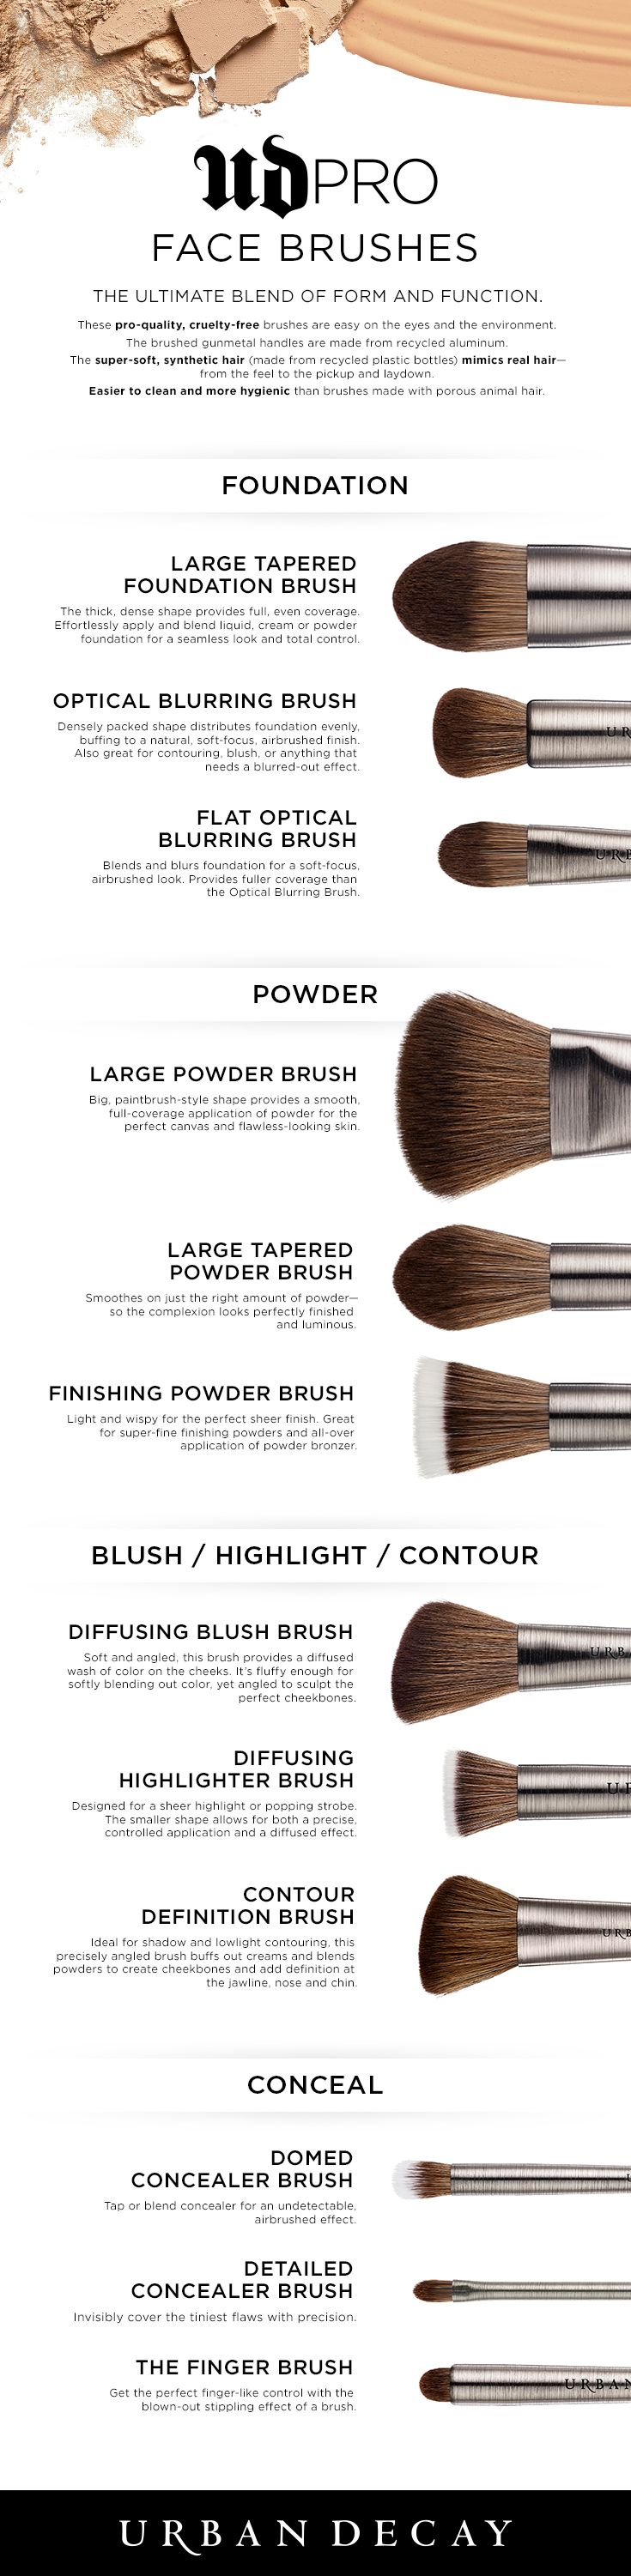 From Foundation and Powder to Blush and Highlight, we've got a UD Pro Brush for…